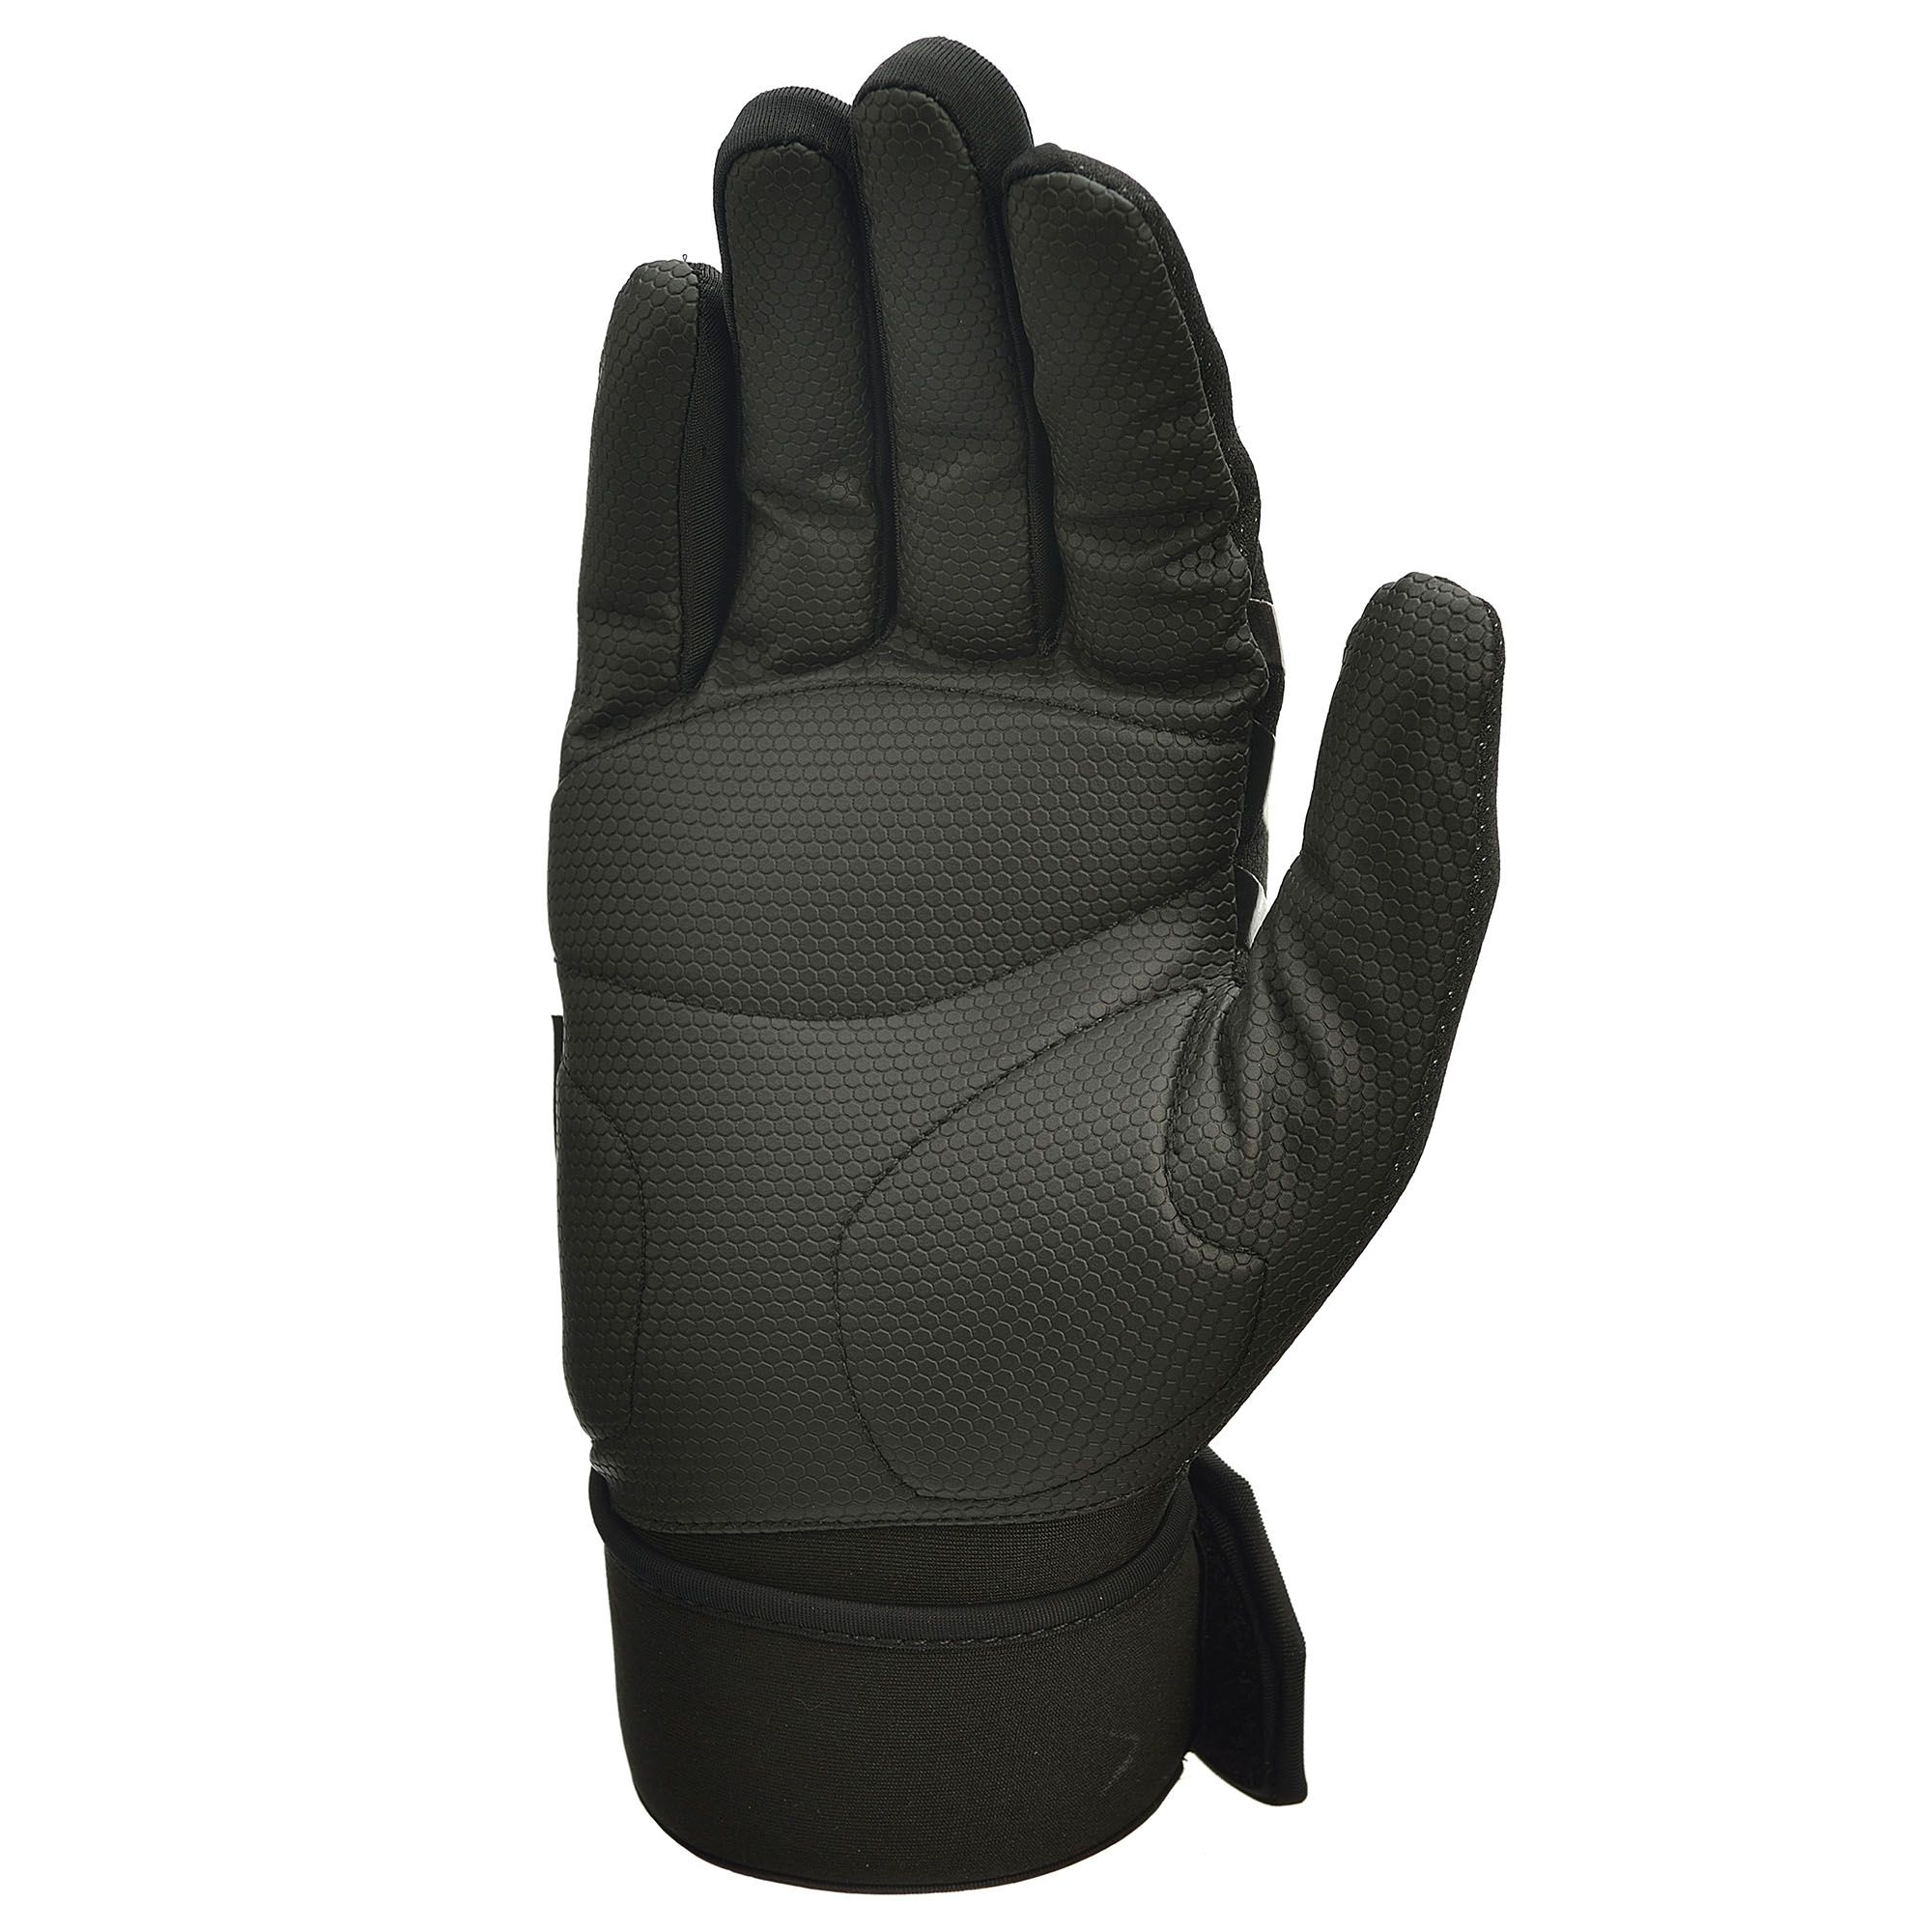 Aqf Weight Lifting Gloves Ultralight Breathable Gym Gloves: Adidas Full Finger Outdoor Training Gloves